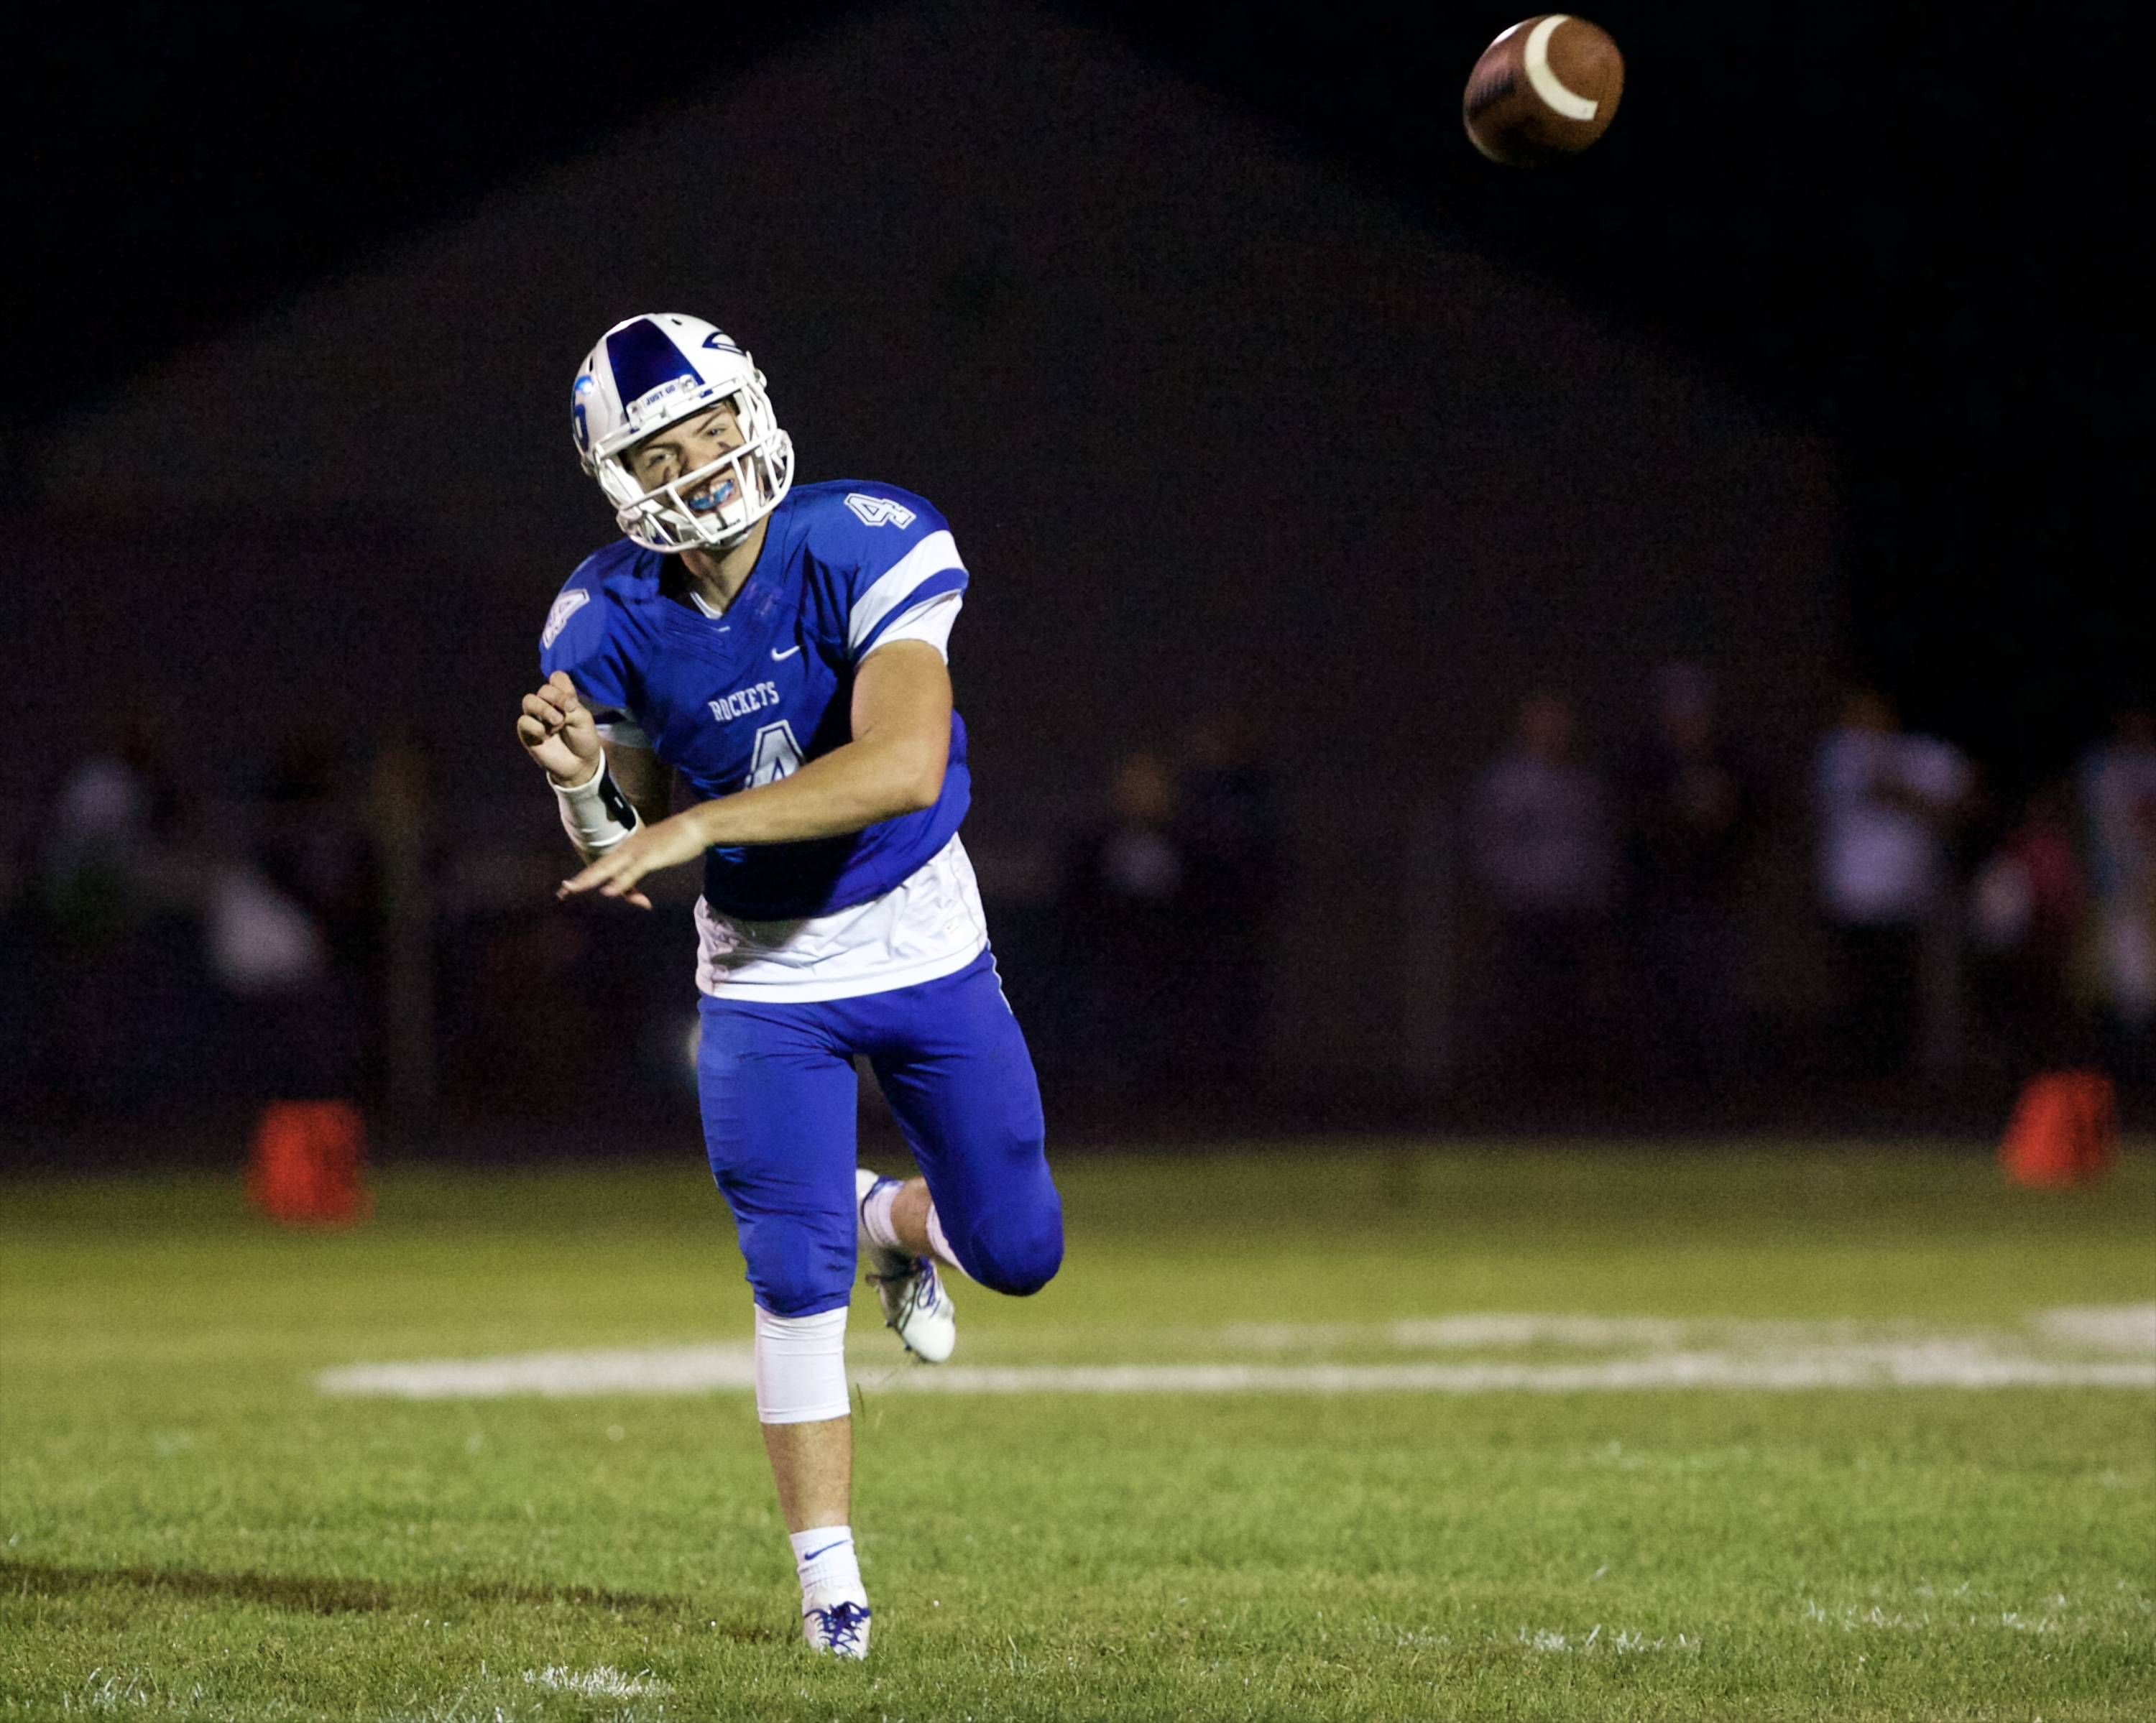 Burlington Central junior quarterback Johnny DiCostanzo will be out for the season with a knee injury.